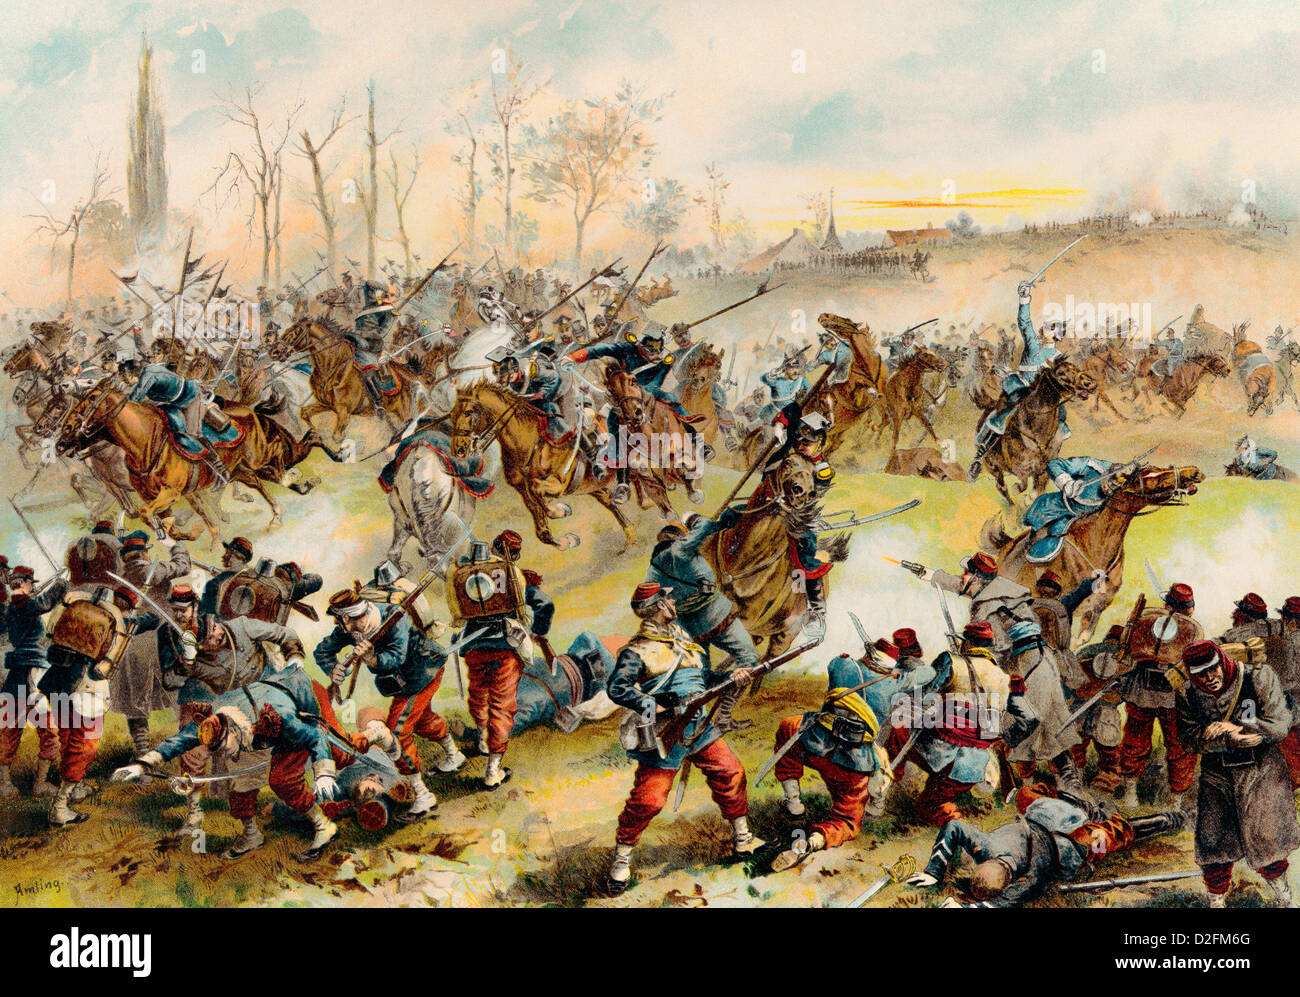 Battle of Saint-Quentin on 19 January 1871, Franco-Prussian War or Franco-German War, 1870-1871 - Stock Image